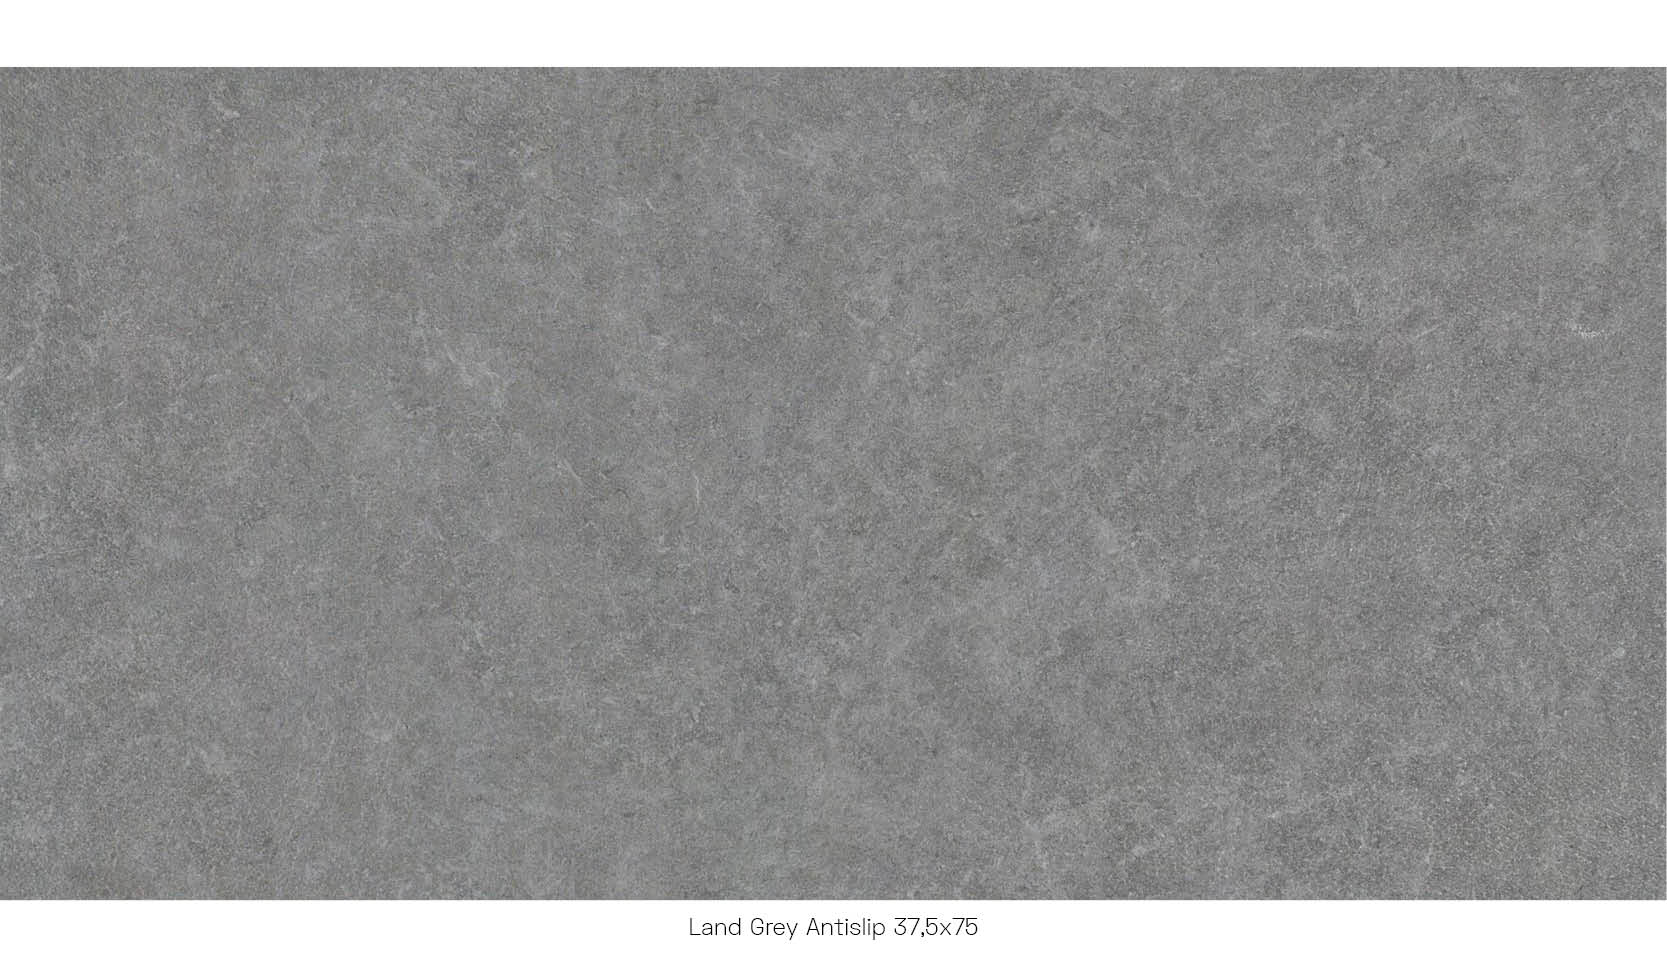 Land Grey Antislip 37,5 x 75